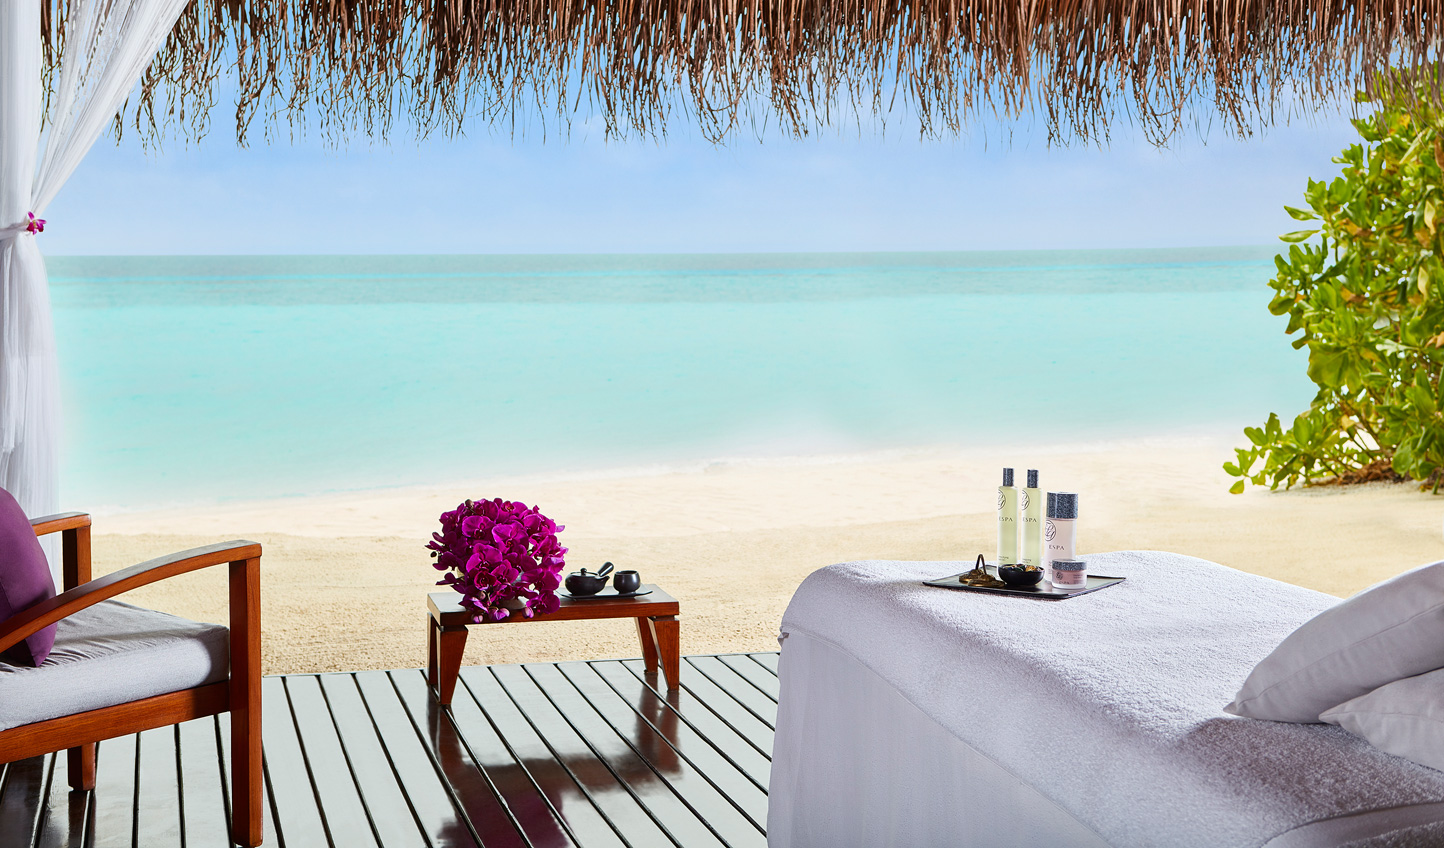 Enjoy a soothing massage to the sound of waves gently rolling in